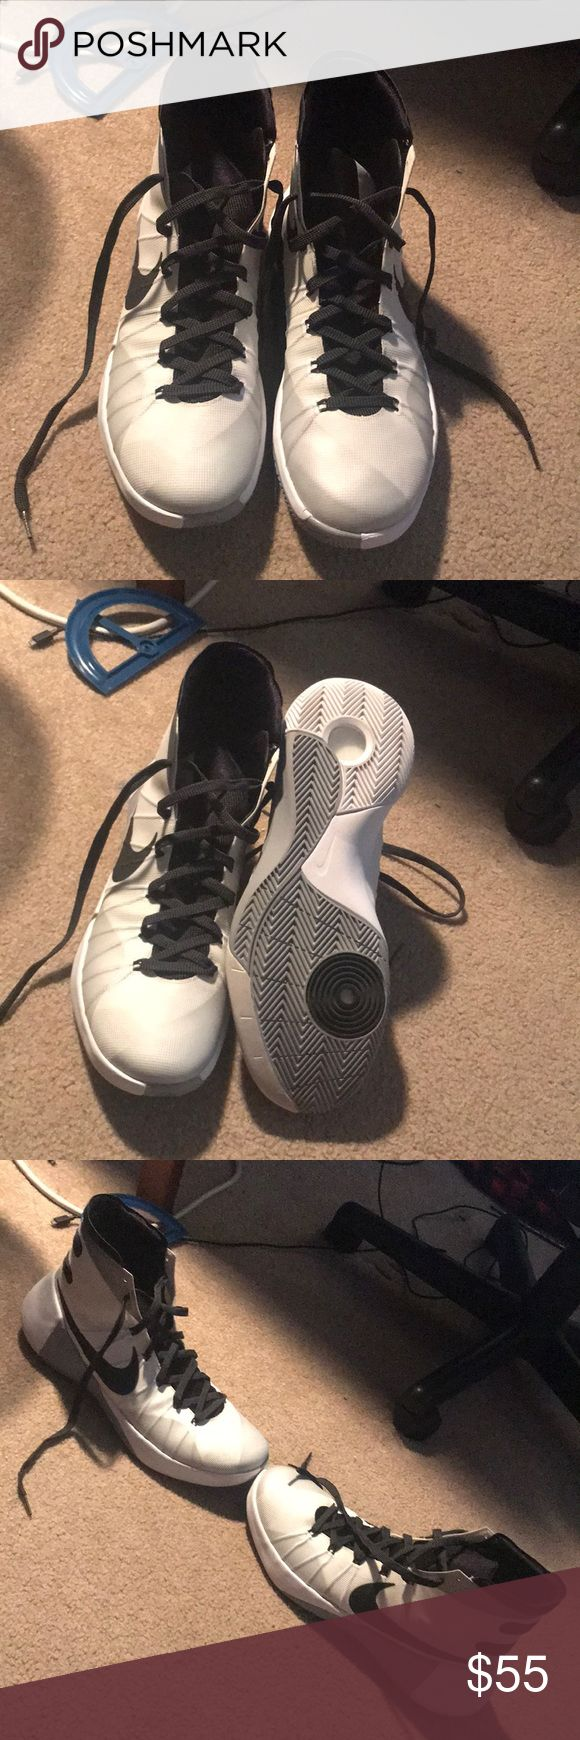 NIKE HI TOP HYPERDUNK 2015 Worn a couple times, still in great condition, no box but will negotiate. Nike Shoes Athletic Shoes